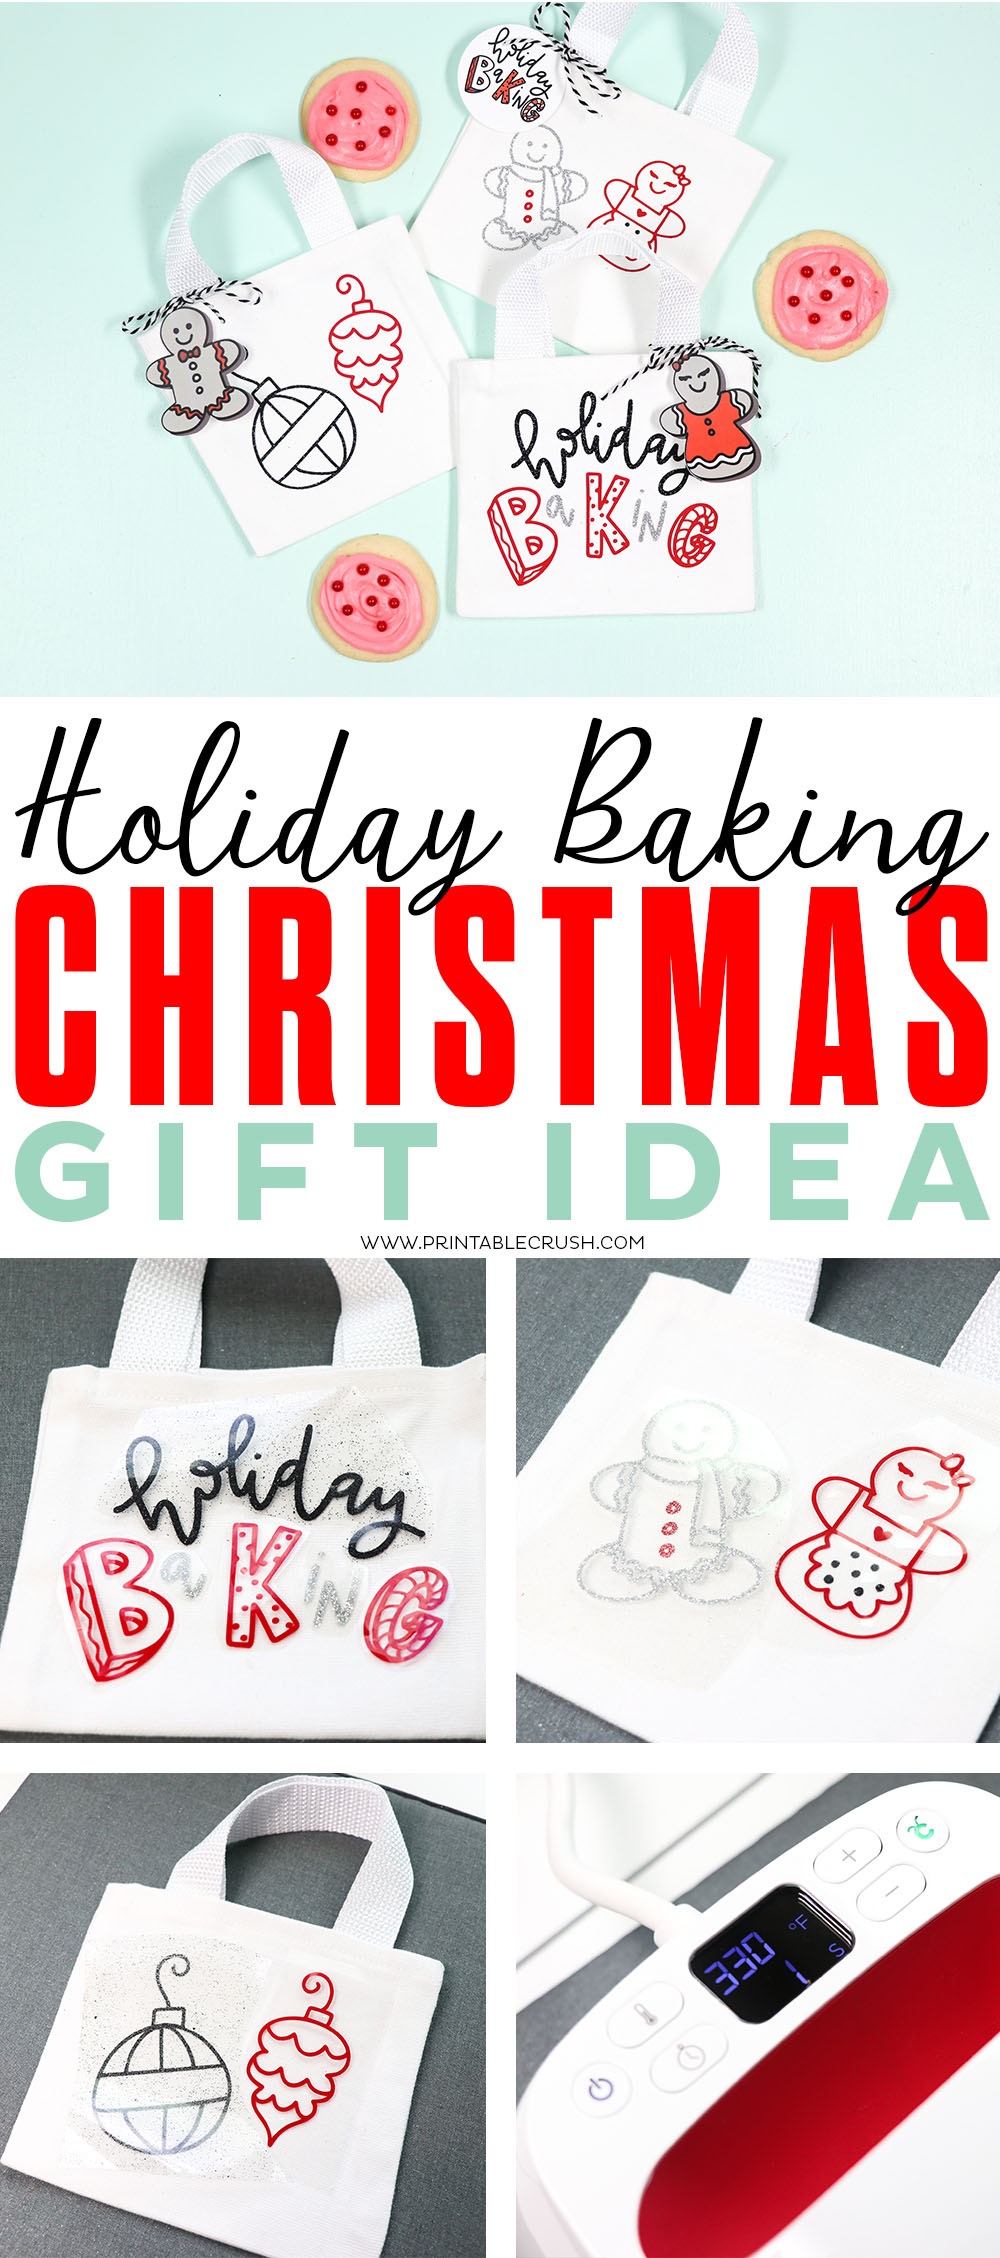 Create this cute Holiday Baking Christmas Gift Idea with the Cricut Maker and EasyPress 2!